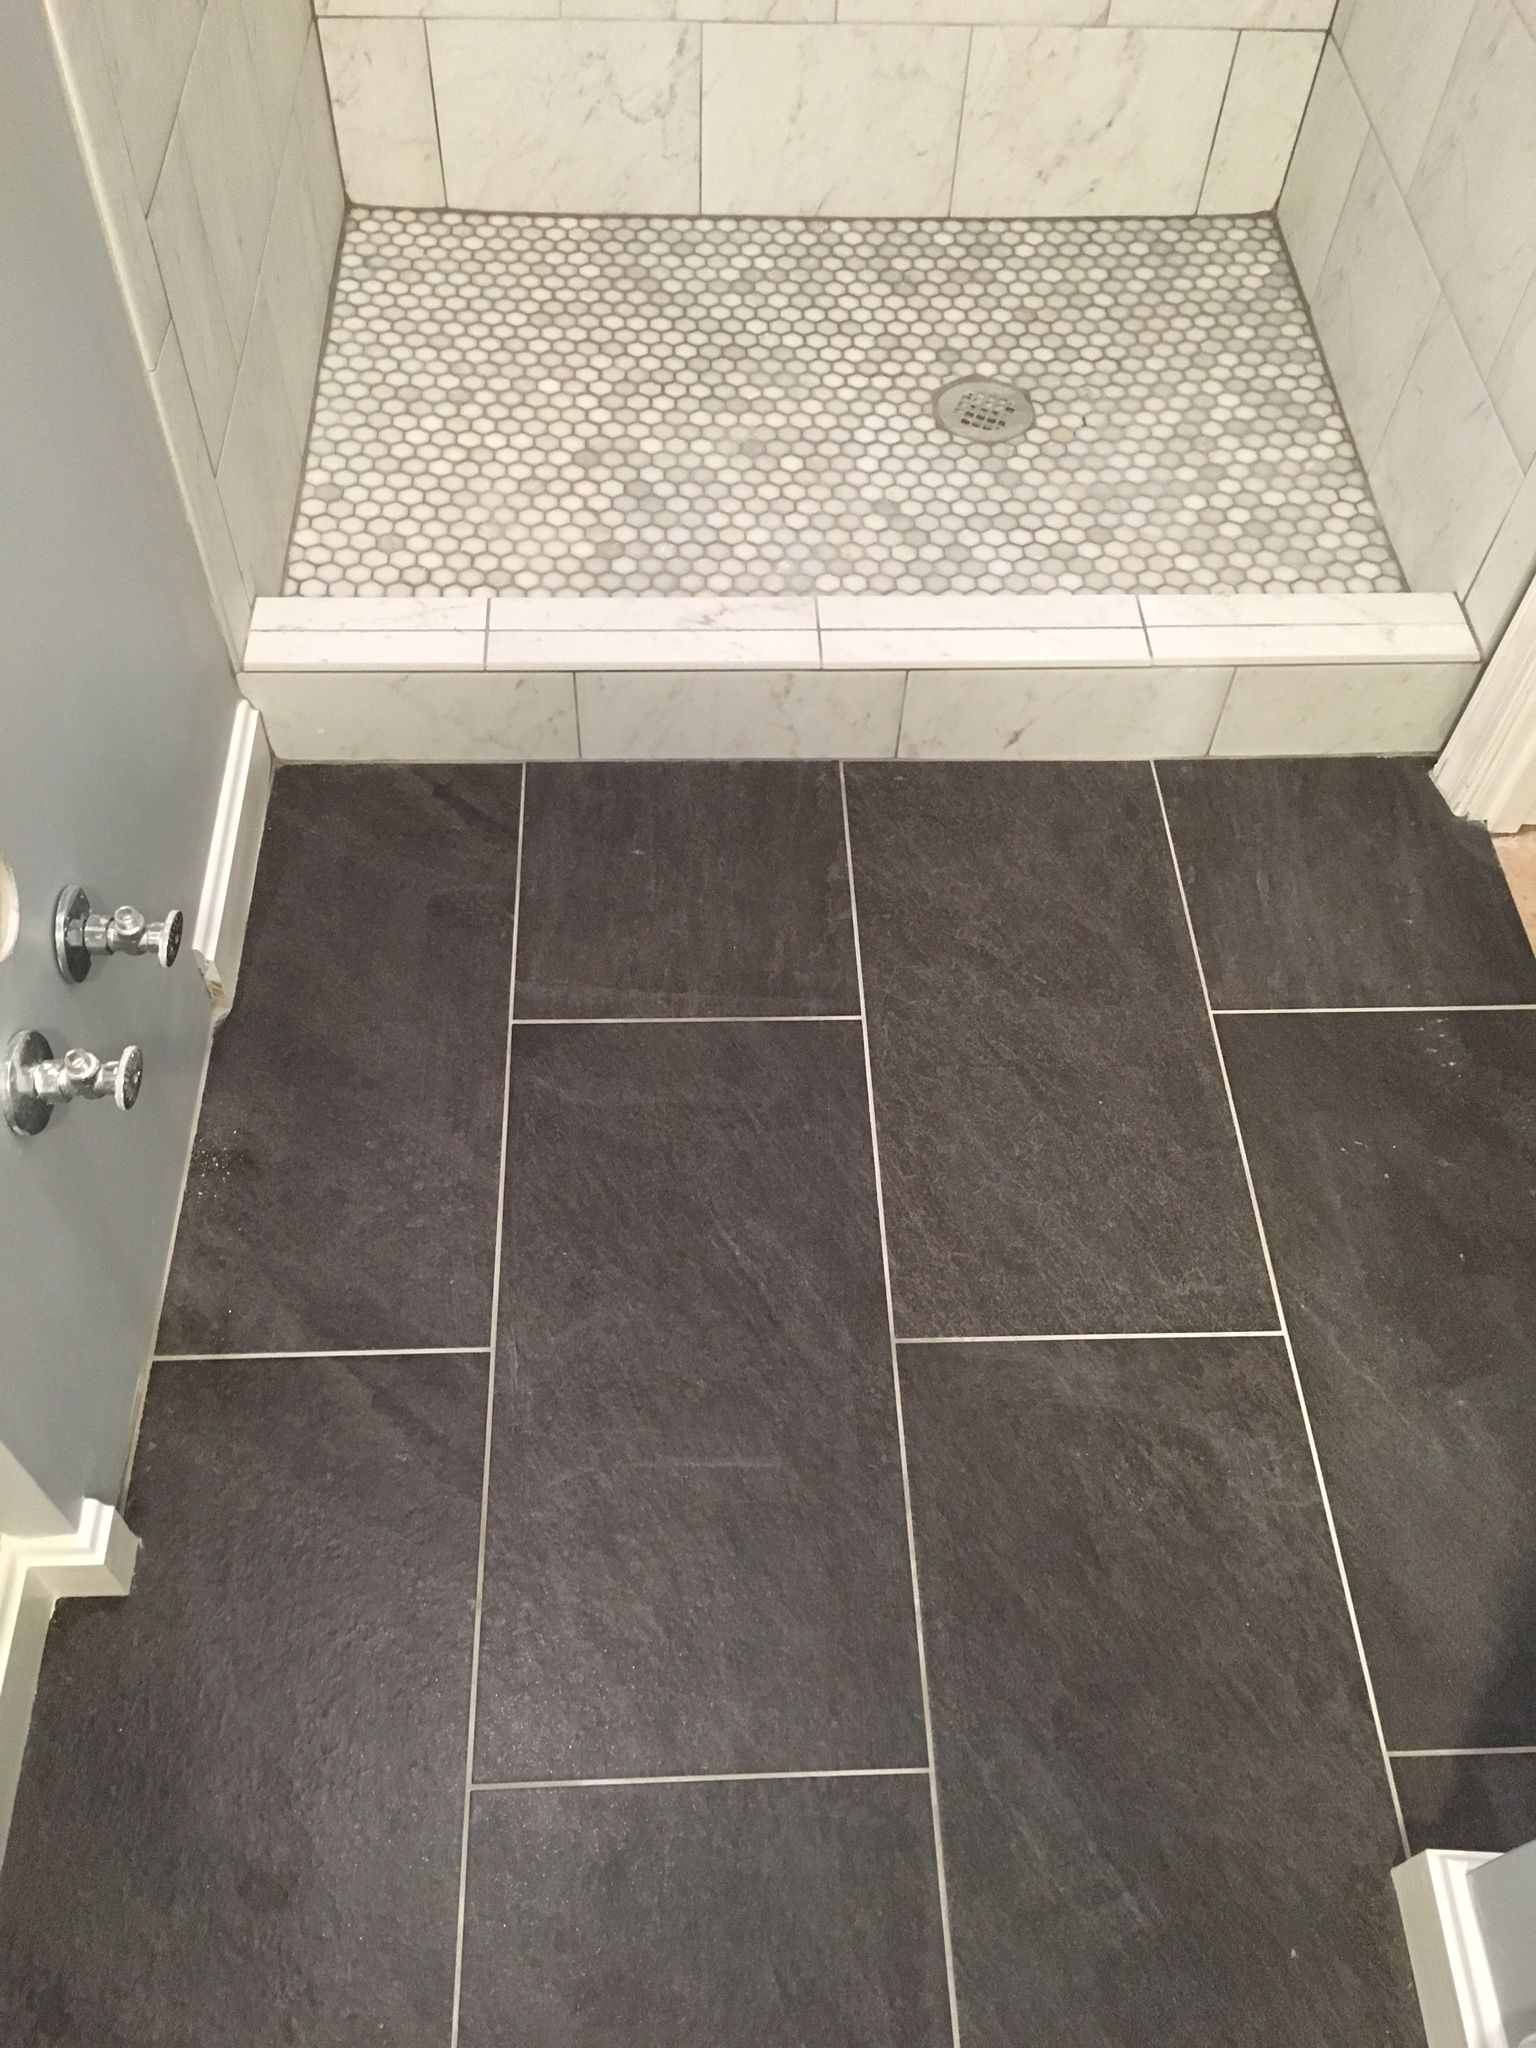 Our Basement Bathroom Reno Porcelain Tile Floor Lowes Galvano - 3x3 tiles lowes